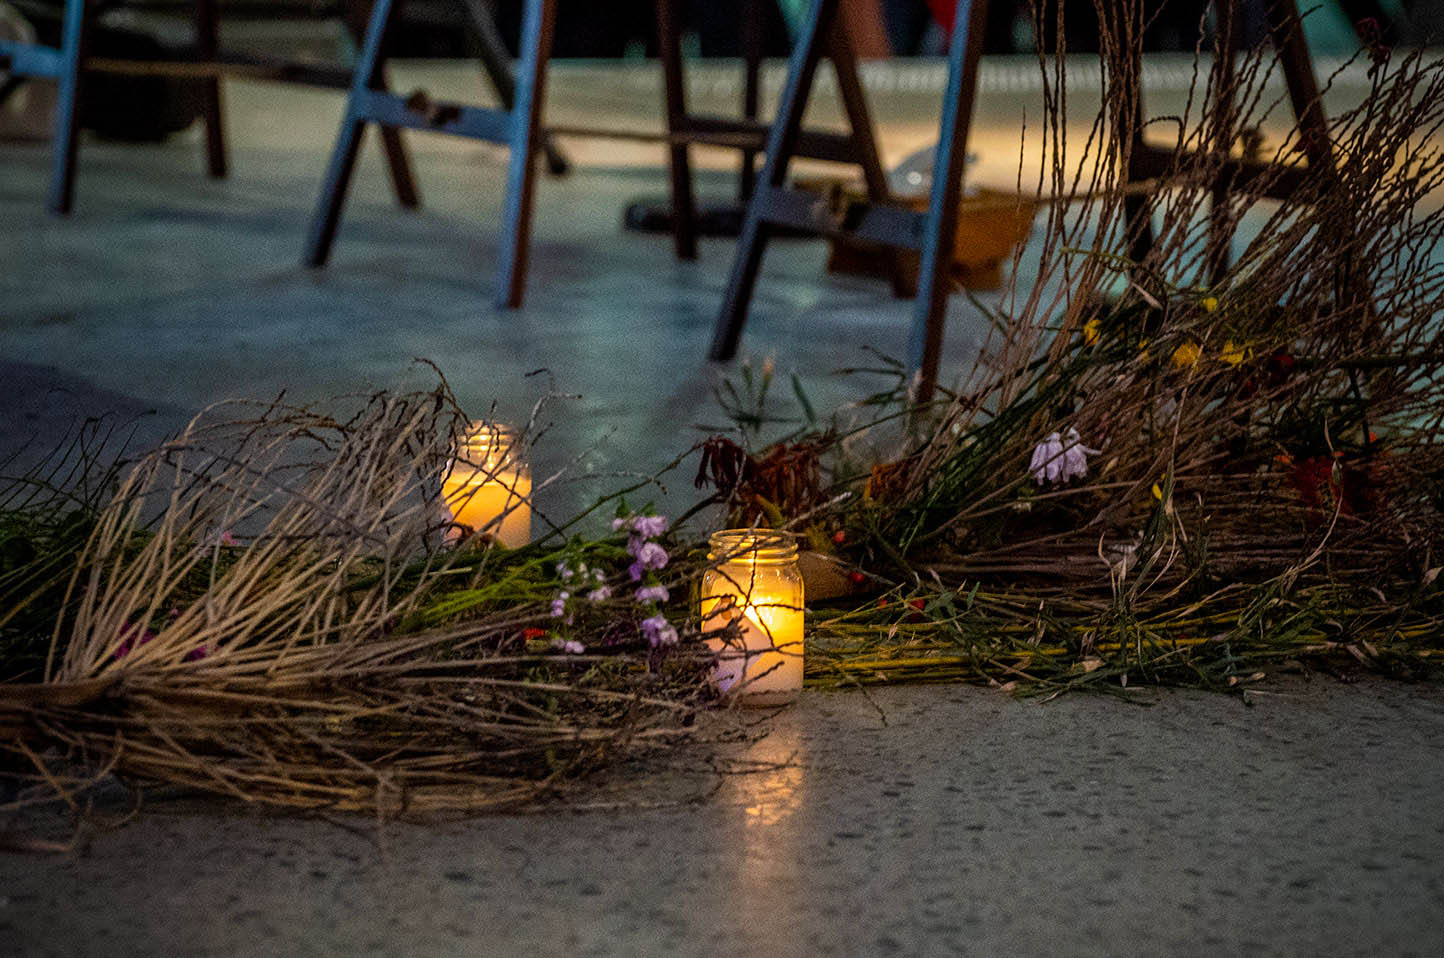 Native flowers and leaves are laid at a vigil on a concrete stage alongside candles in small glass jars.